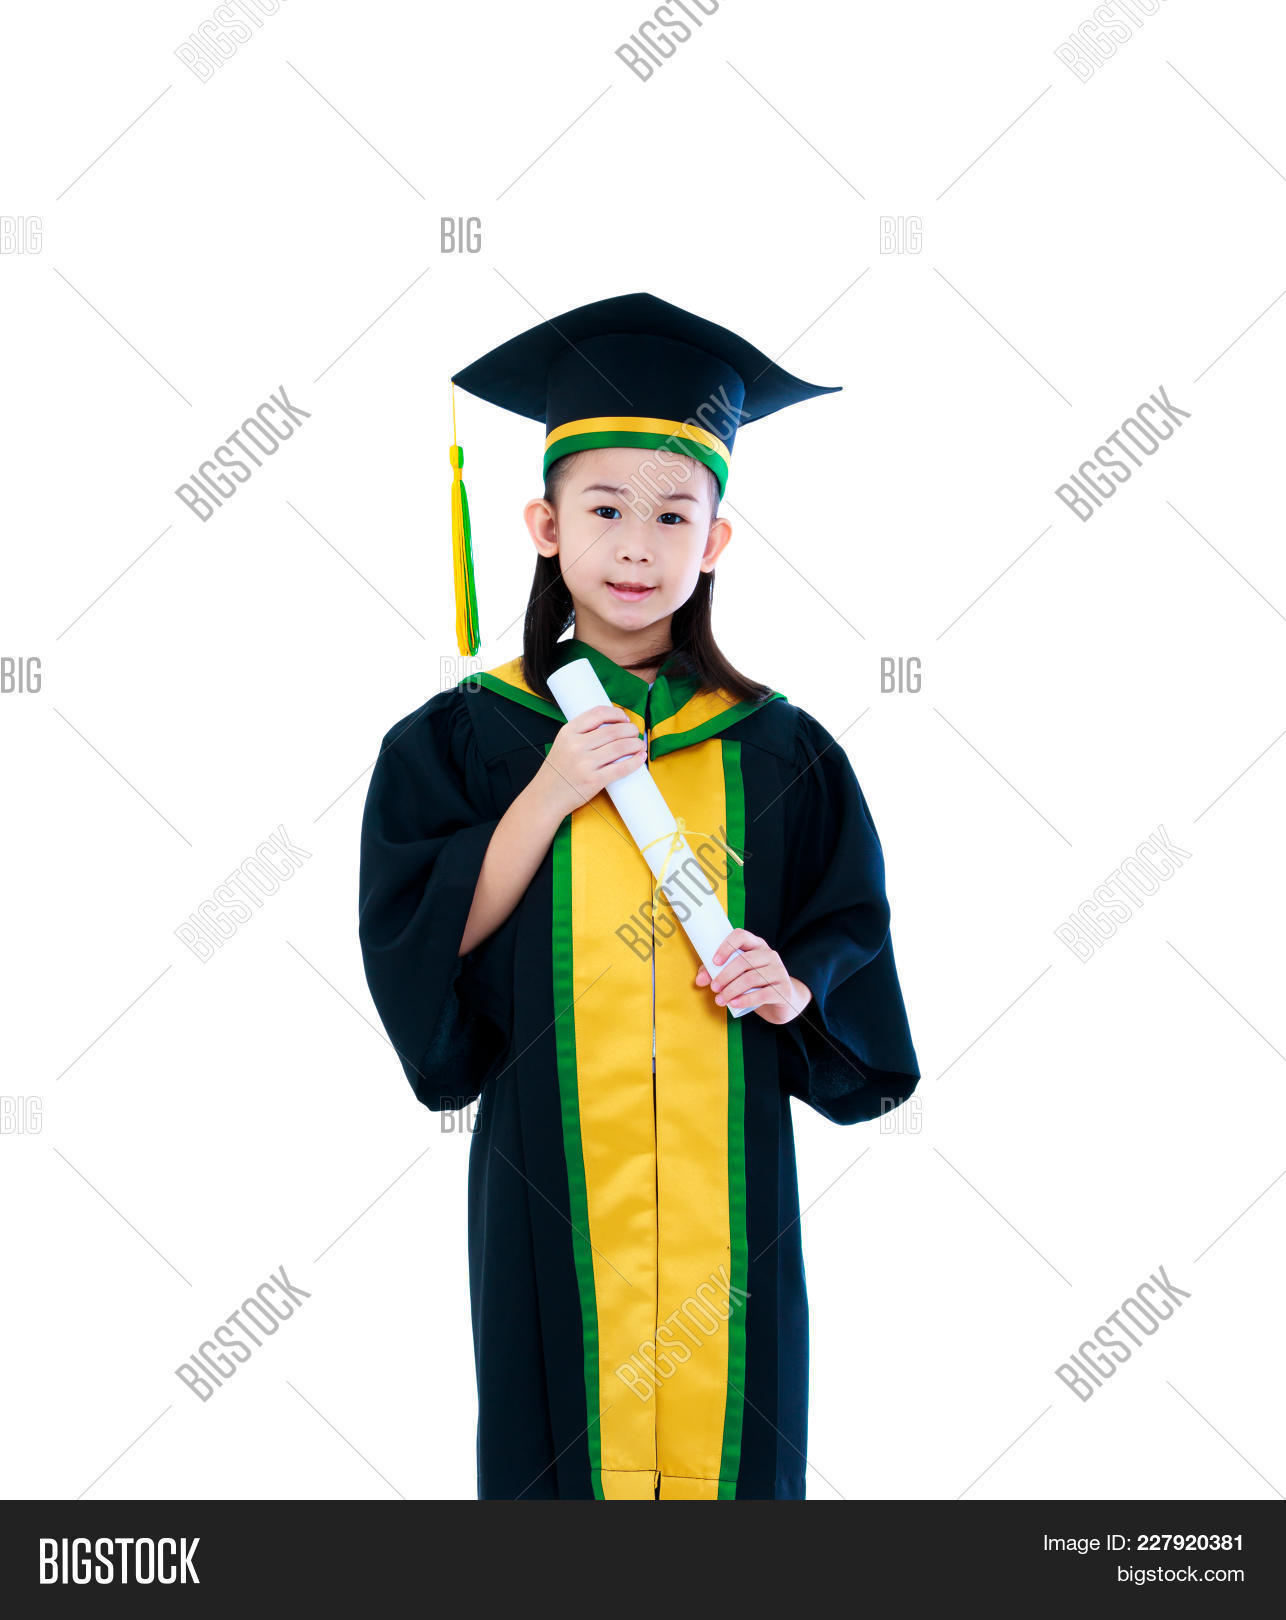 Kindergarten Image & Photo (Free Trial) | Bigstock